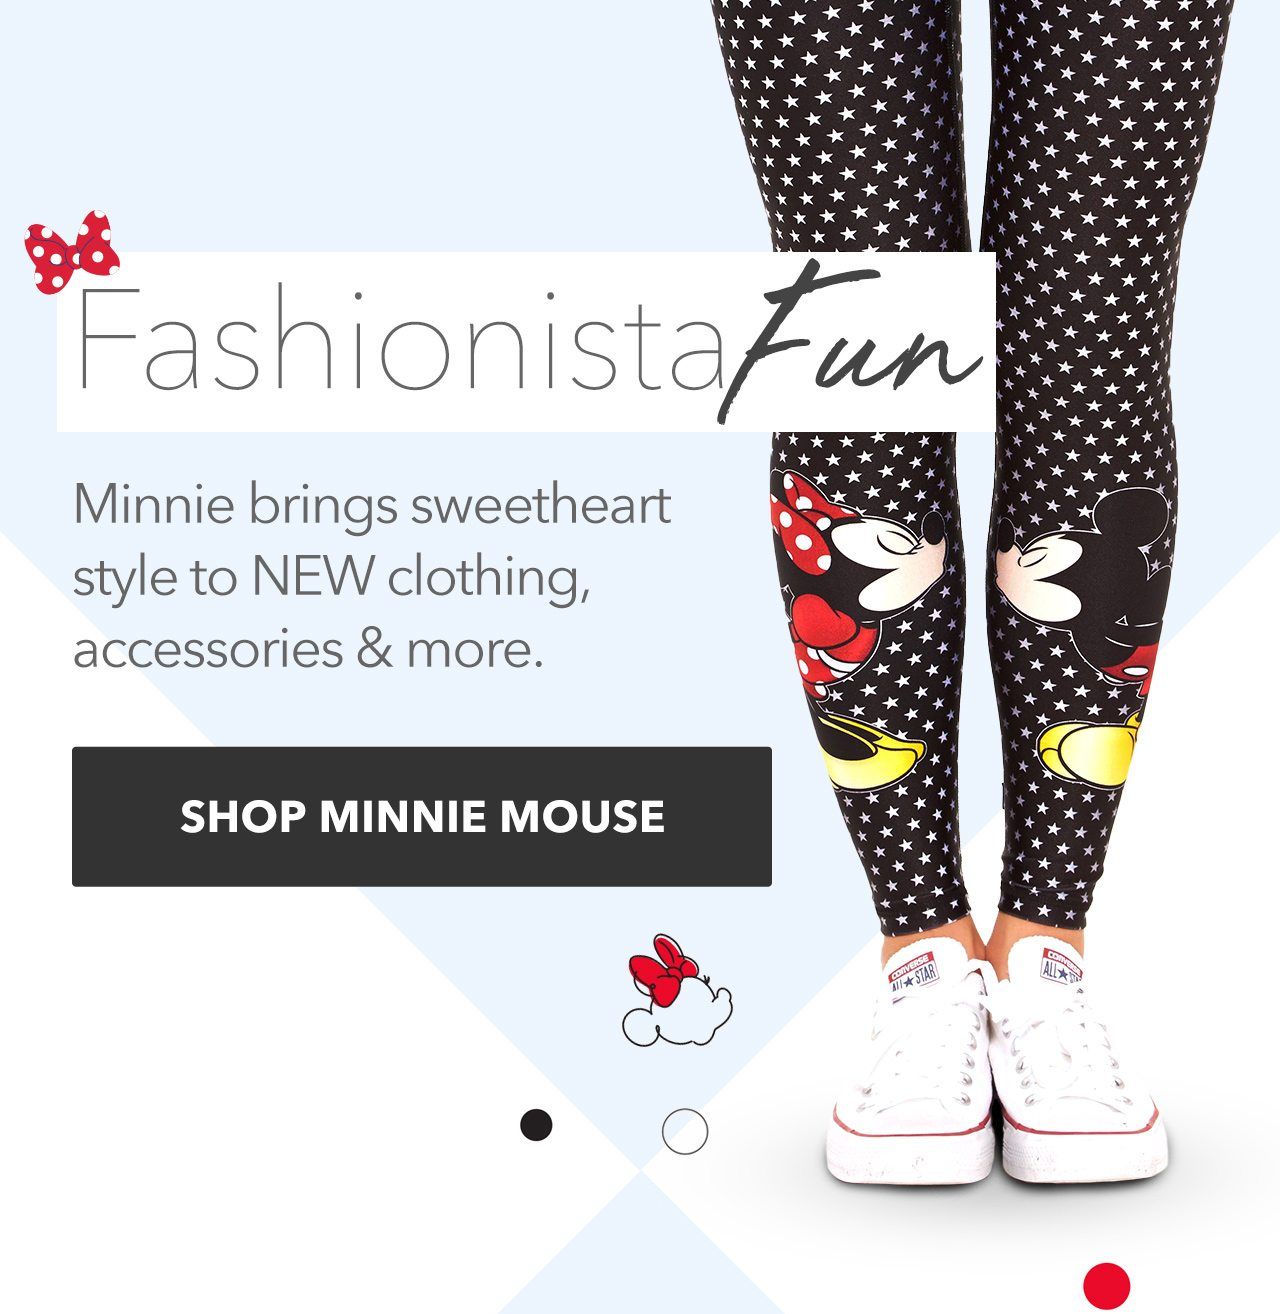 Fashionista Fun | Shop Minnie Mouse